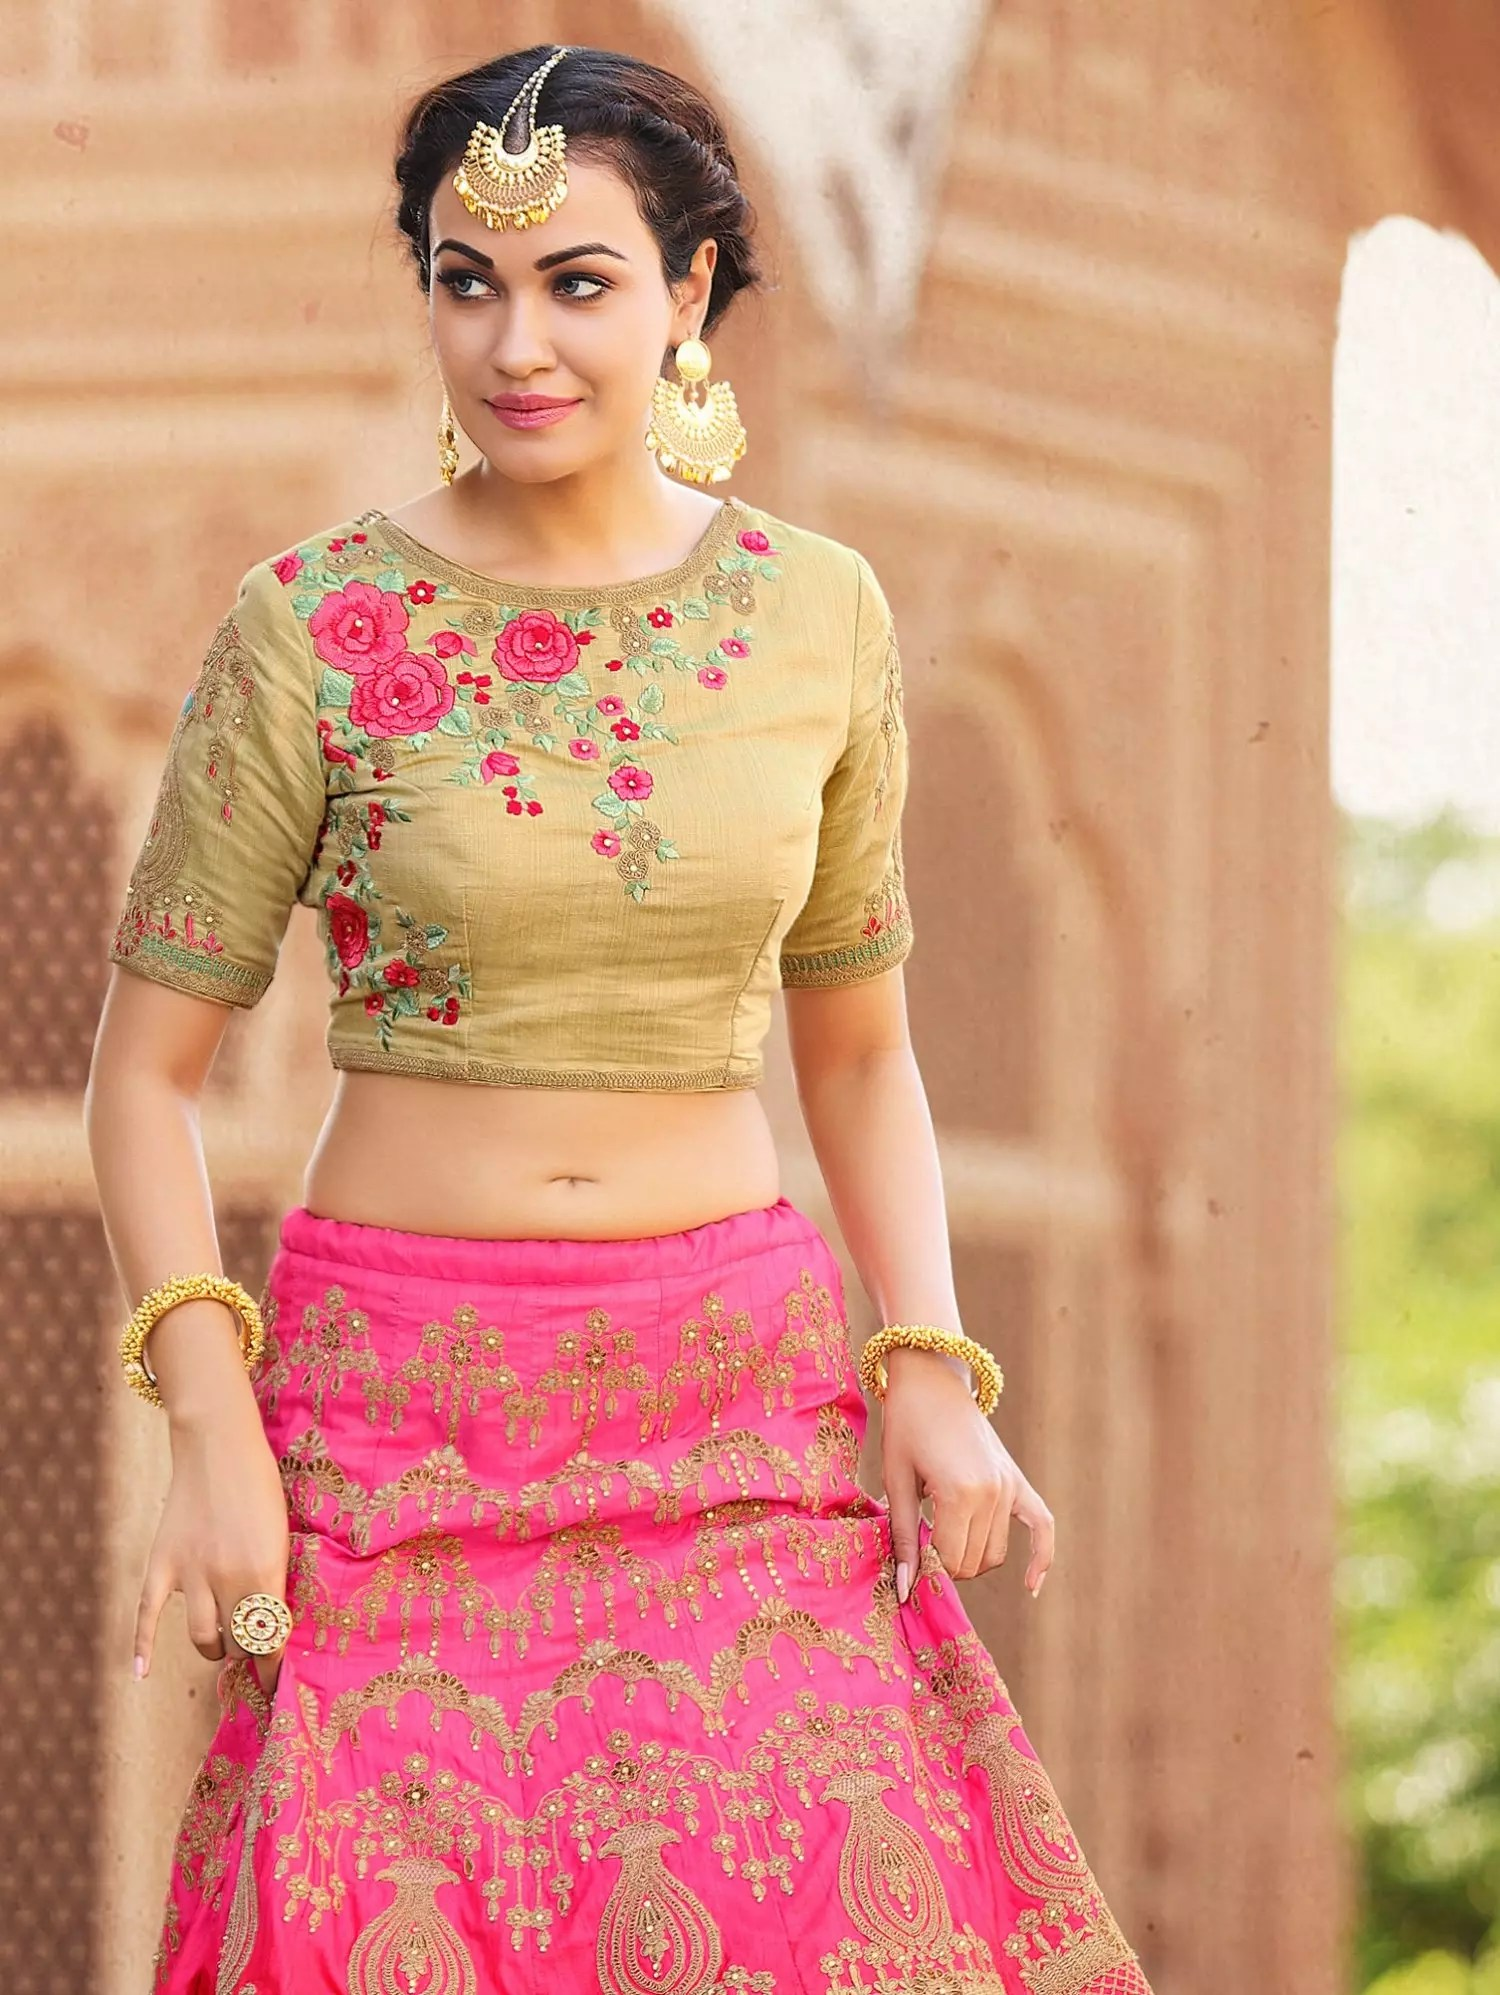 Latest Blouse Design For Lehenga 2019 Top 15 Latest Blouse Designs For Lehenga Update Discover The Latest Best Selling Shop Women S Shirts High Quality Blouses,Small Simple Female Tattoo Designs